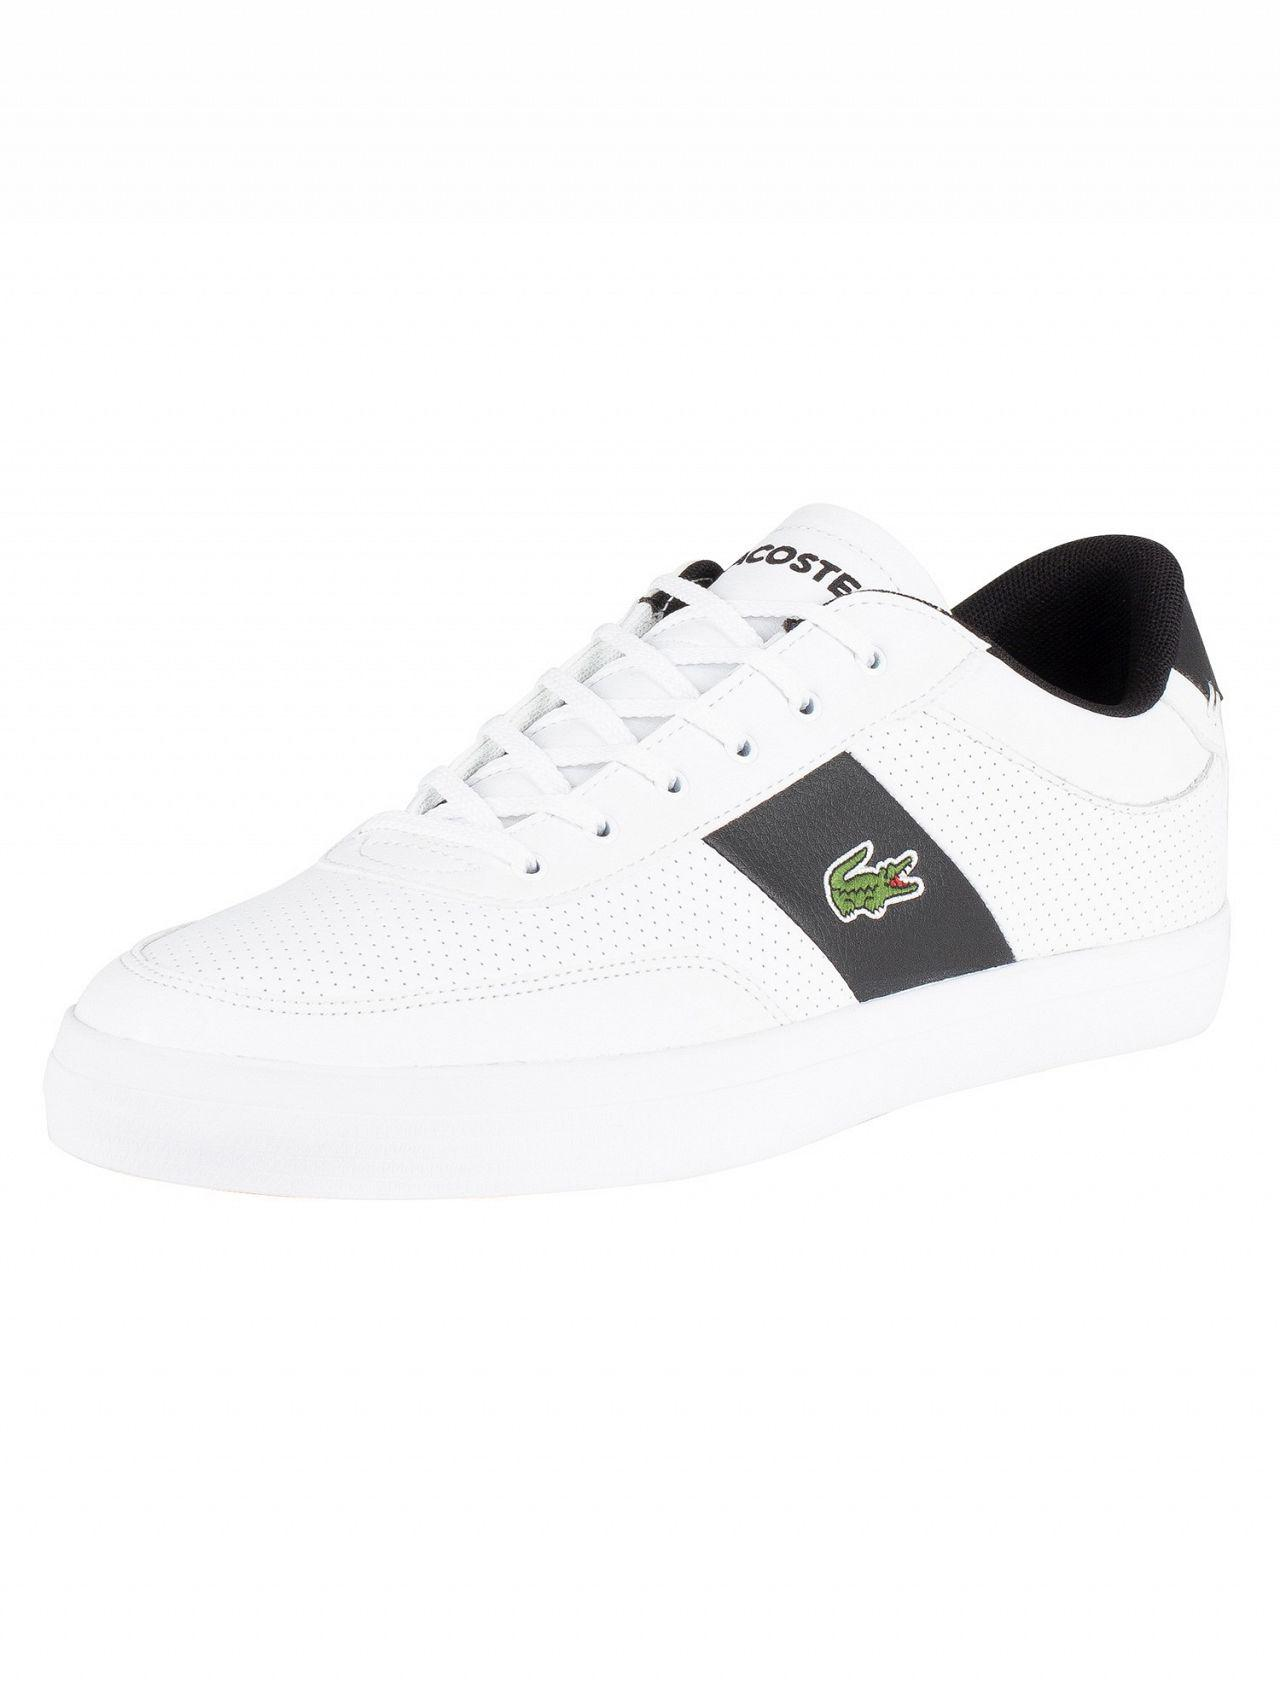 85033d9cf Tap to visit site. Lacoste - White/black Court-master 119 2 Leather  Trainers for Men - Lyst